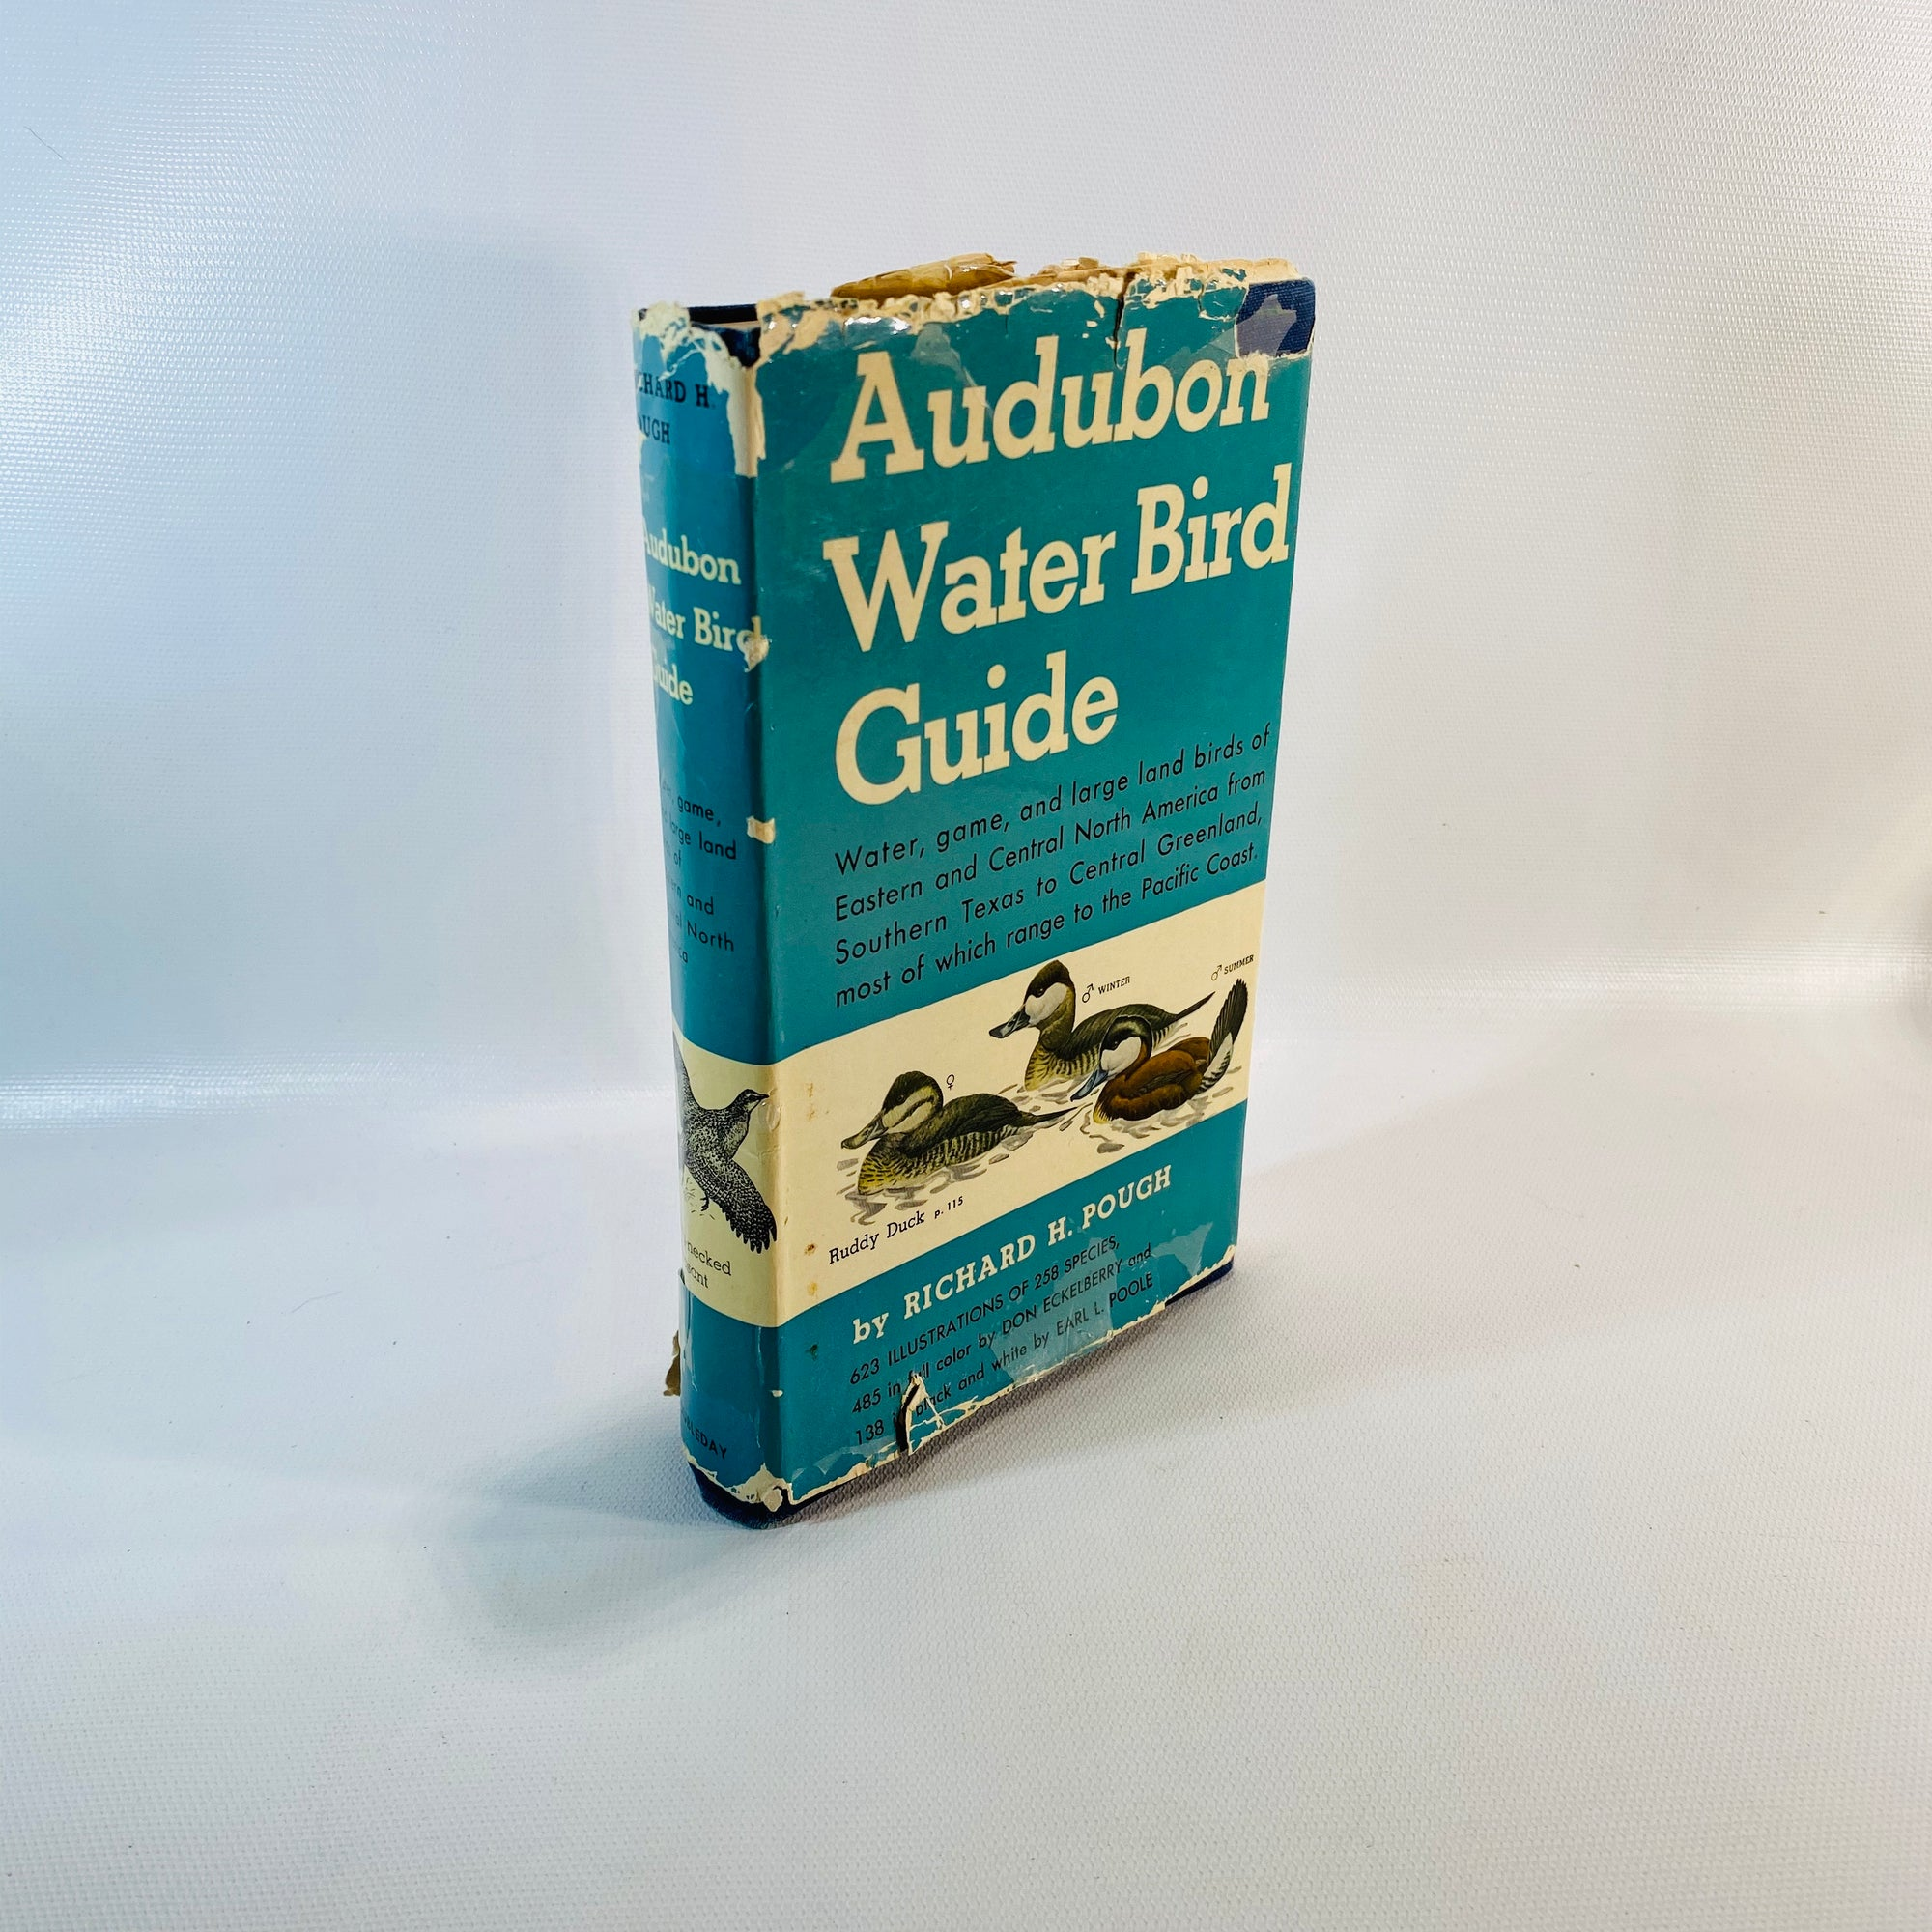 Audubon Water Bird Guide by Richard H. Pough 1951